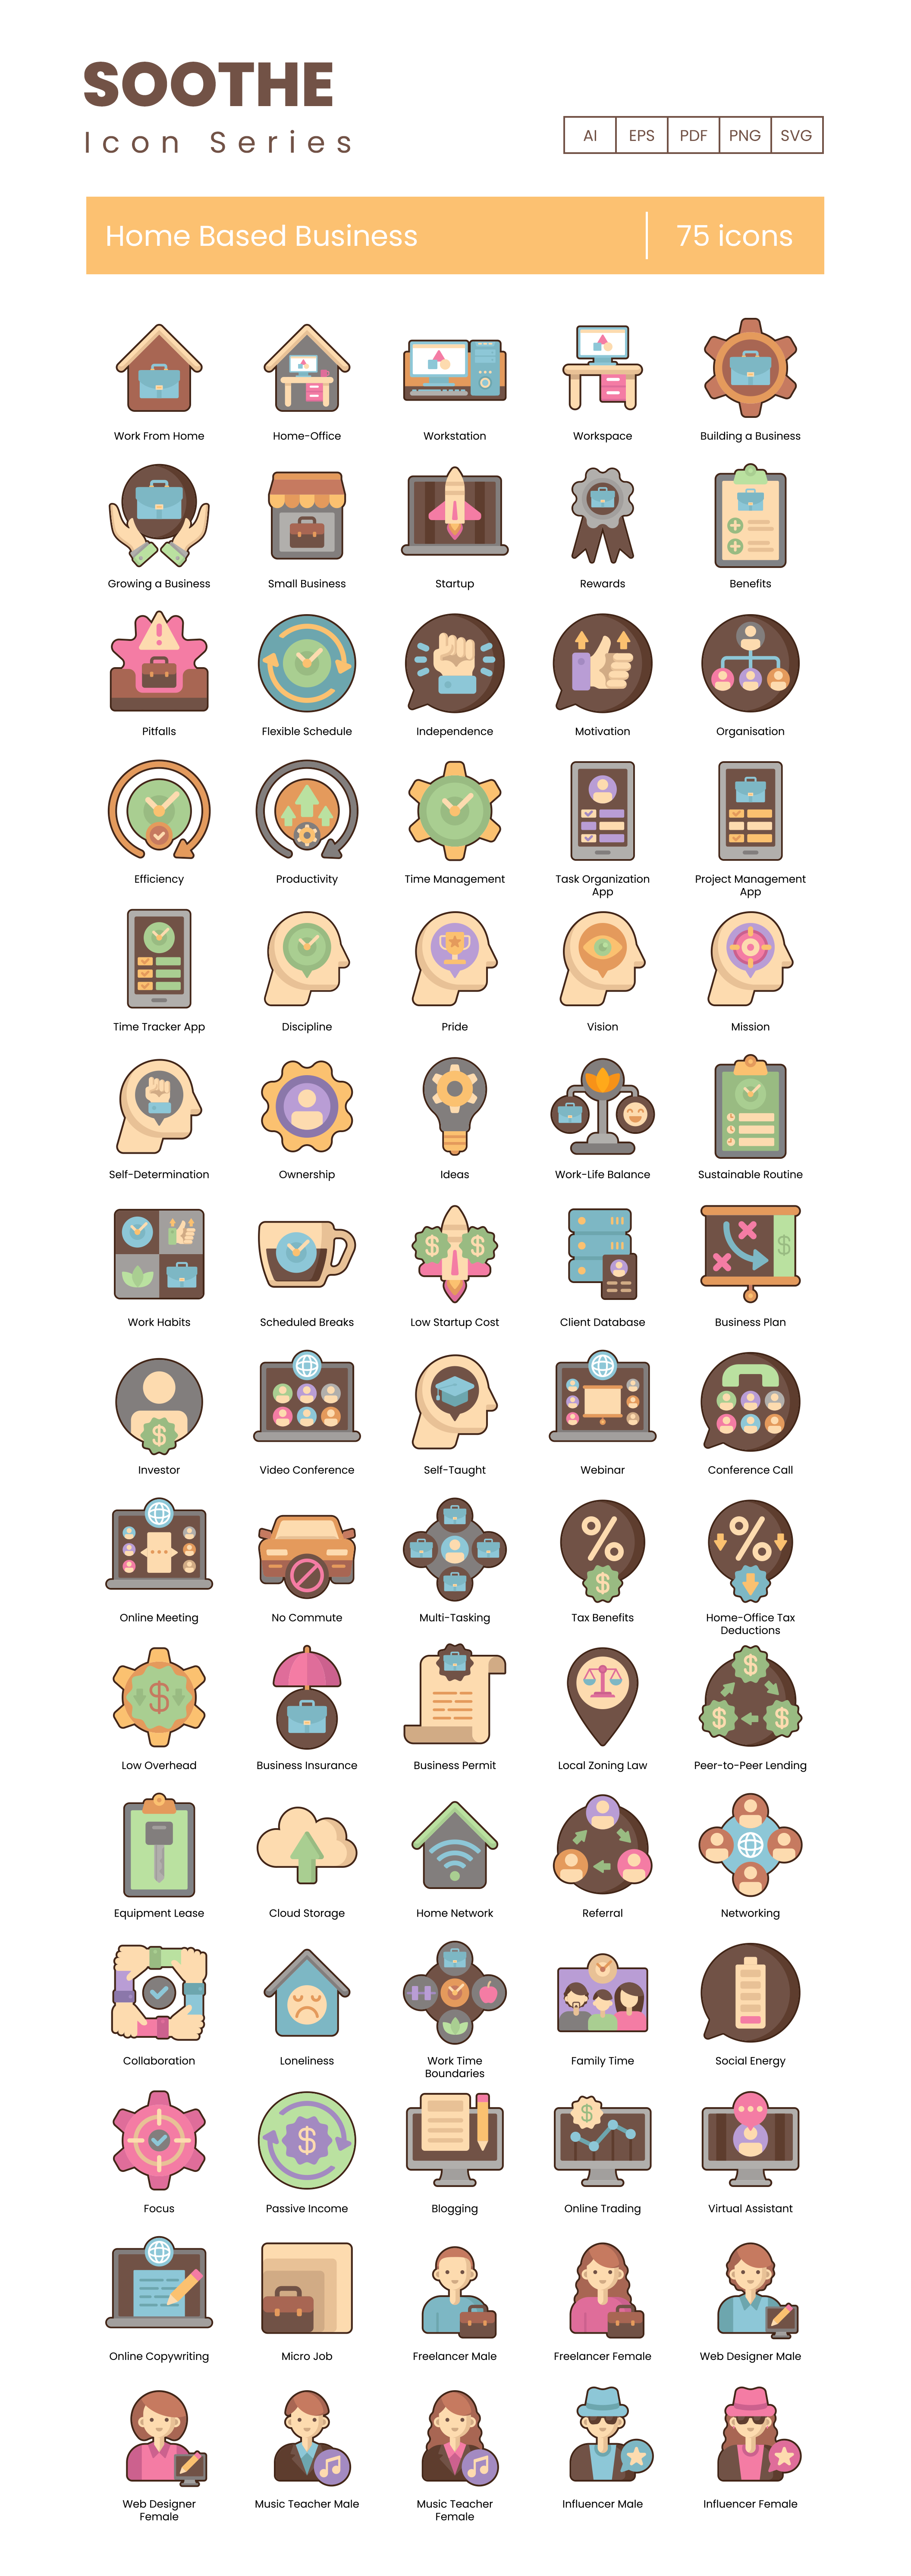 Home Based Business Vector Icons Preview Image